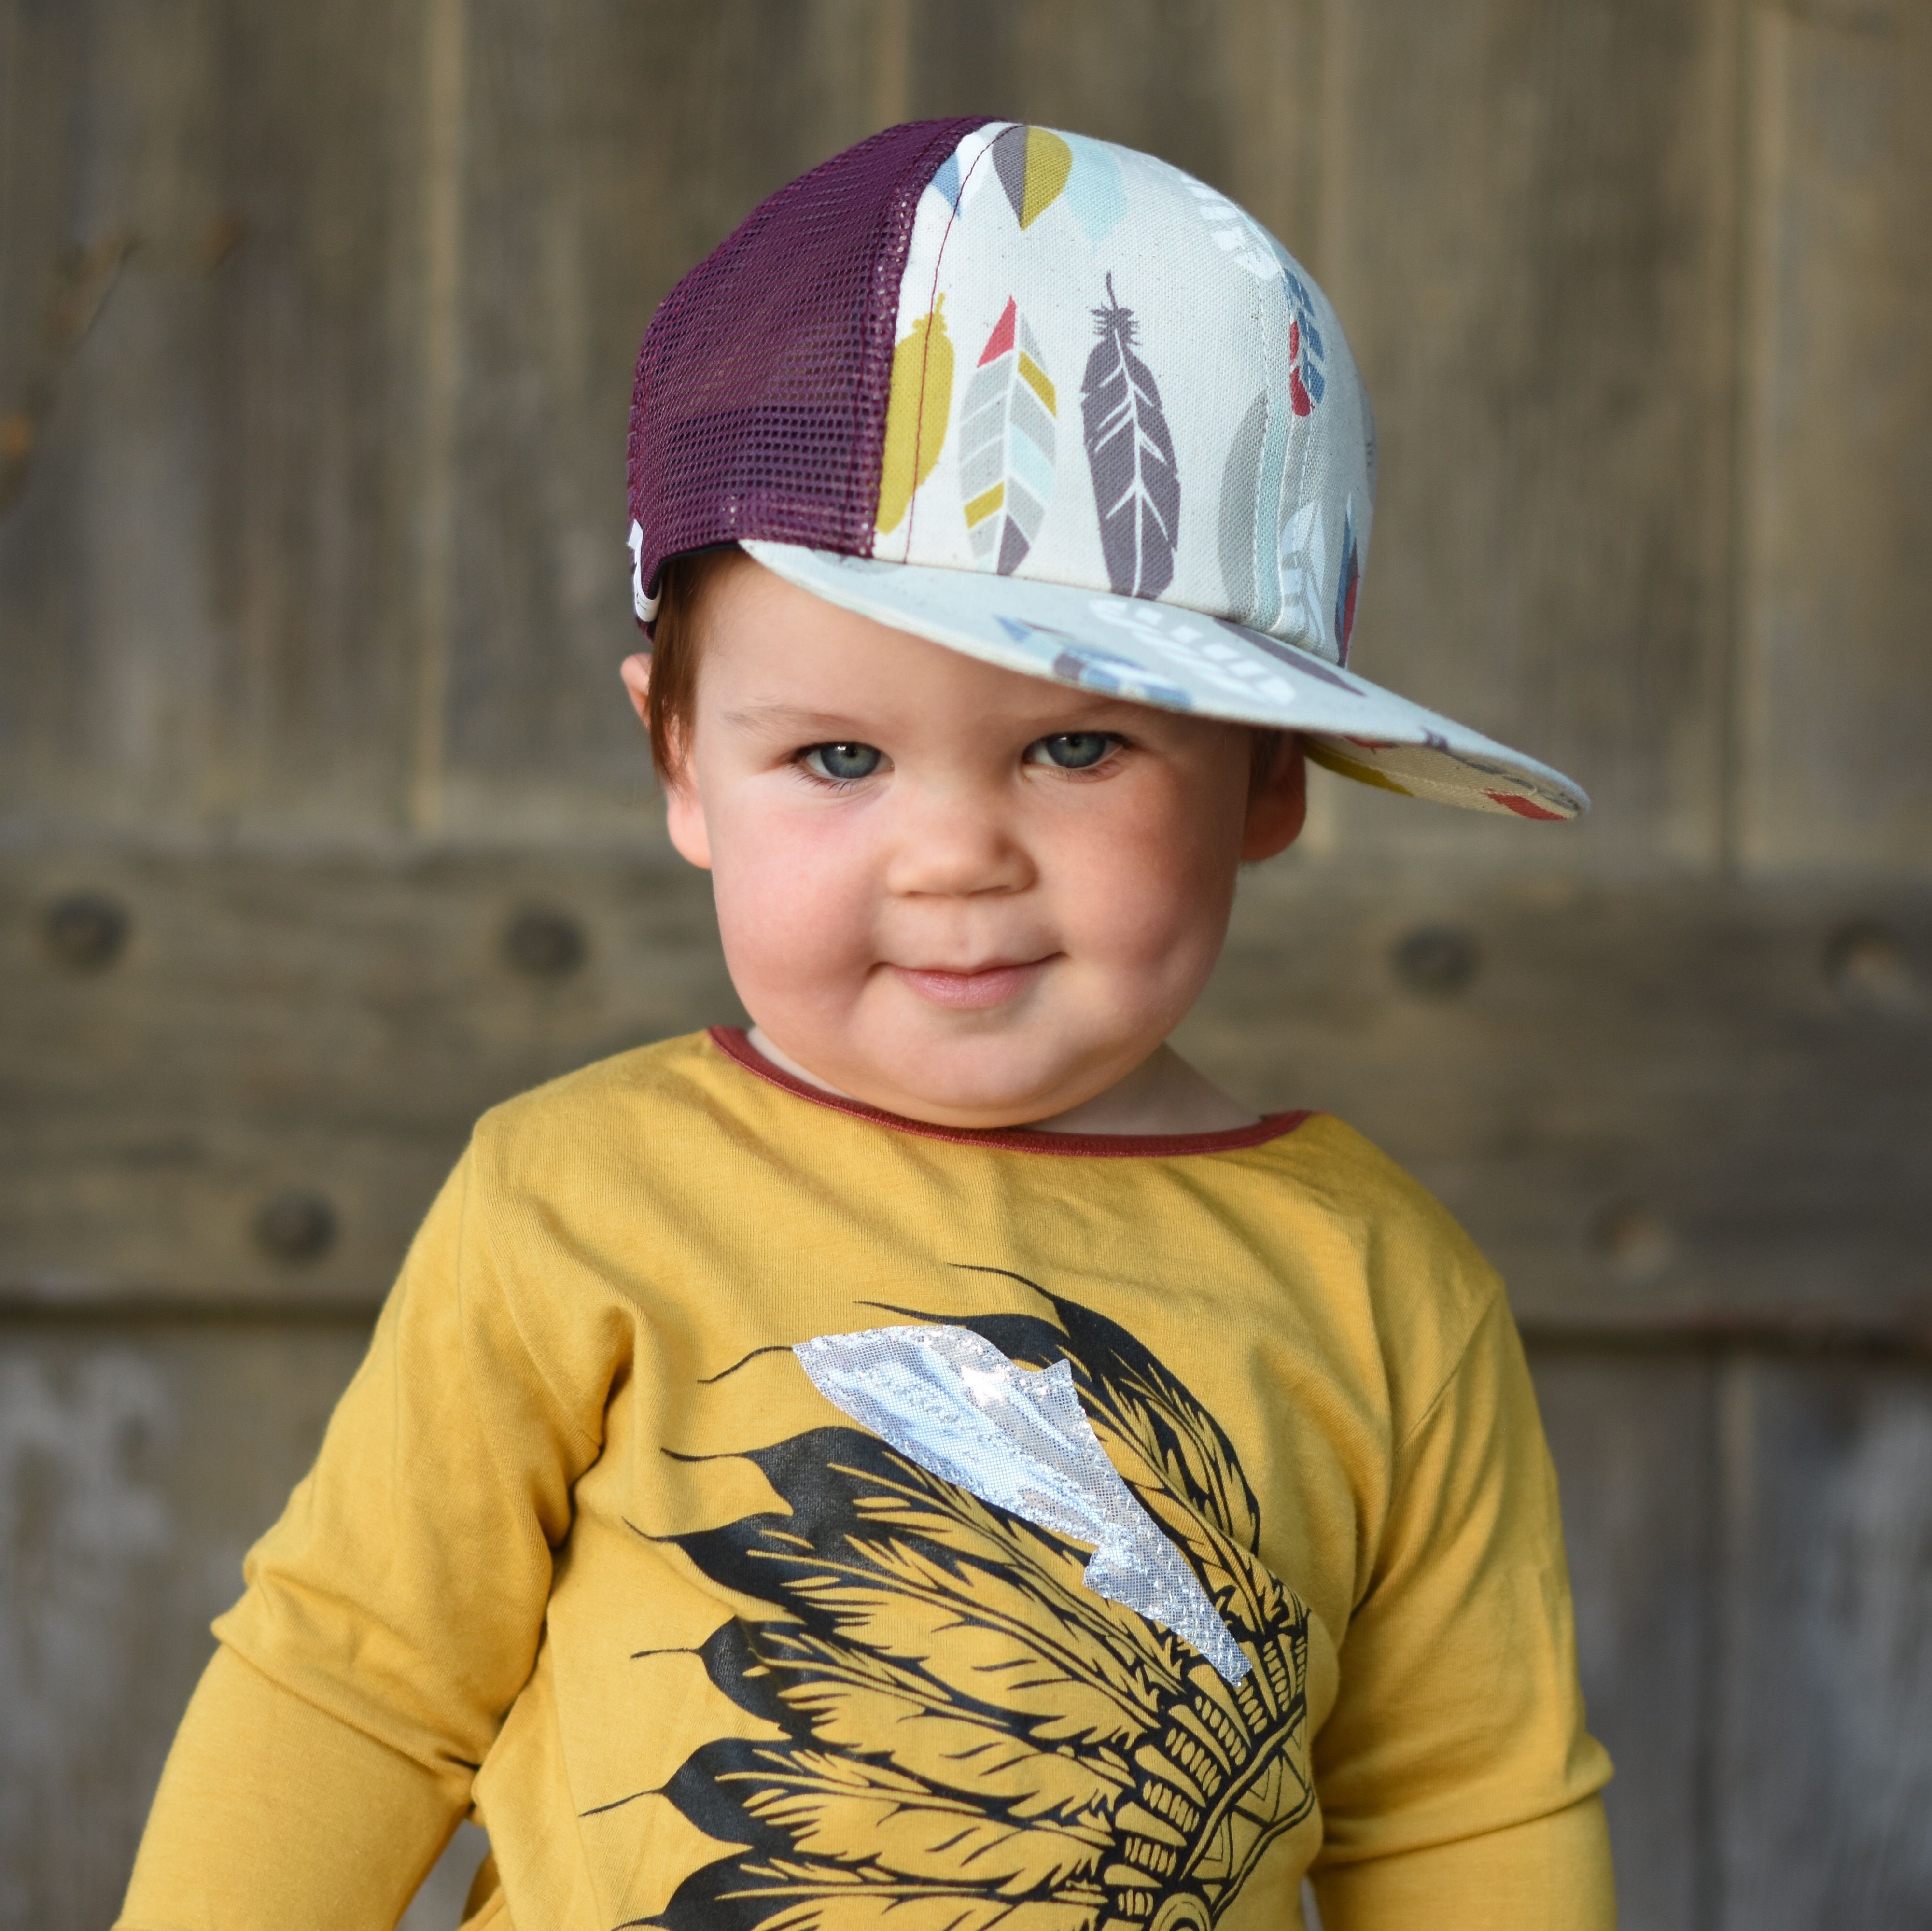 fedddd3d4 Fall Baby Style! Toddler Trucker hat @george_hats | Snakes & Snails ...